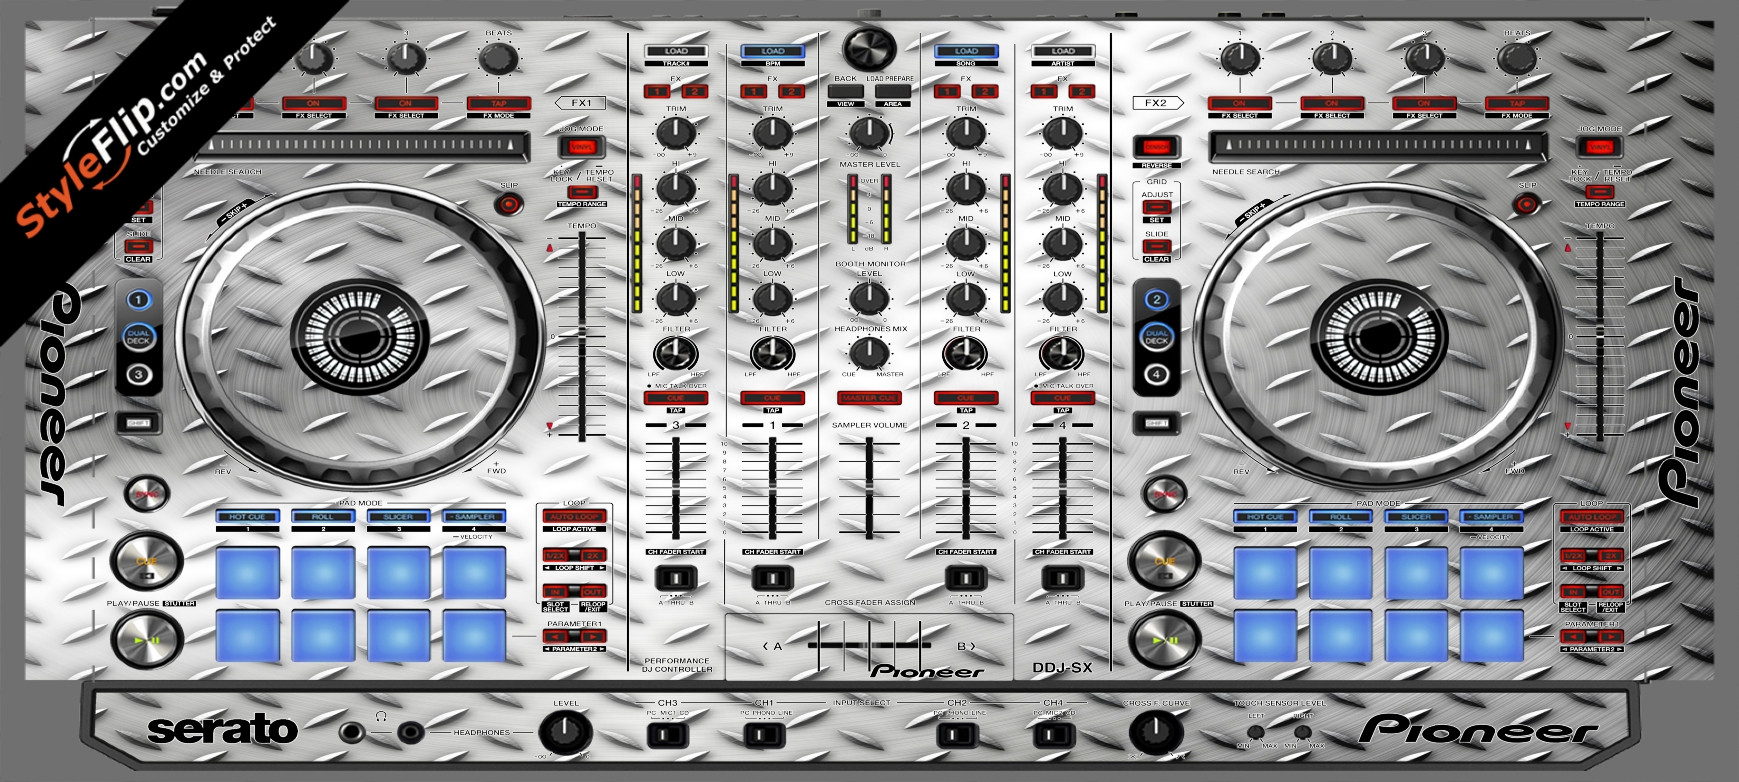 Steel Diamond  Pioneer DDJ-SX